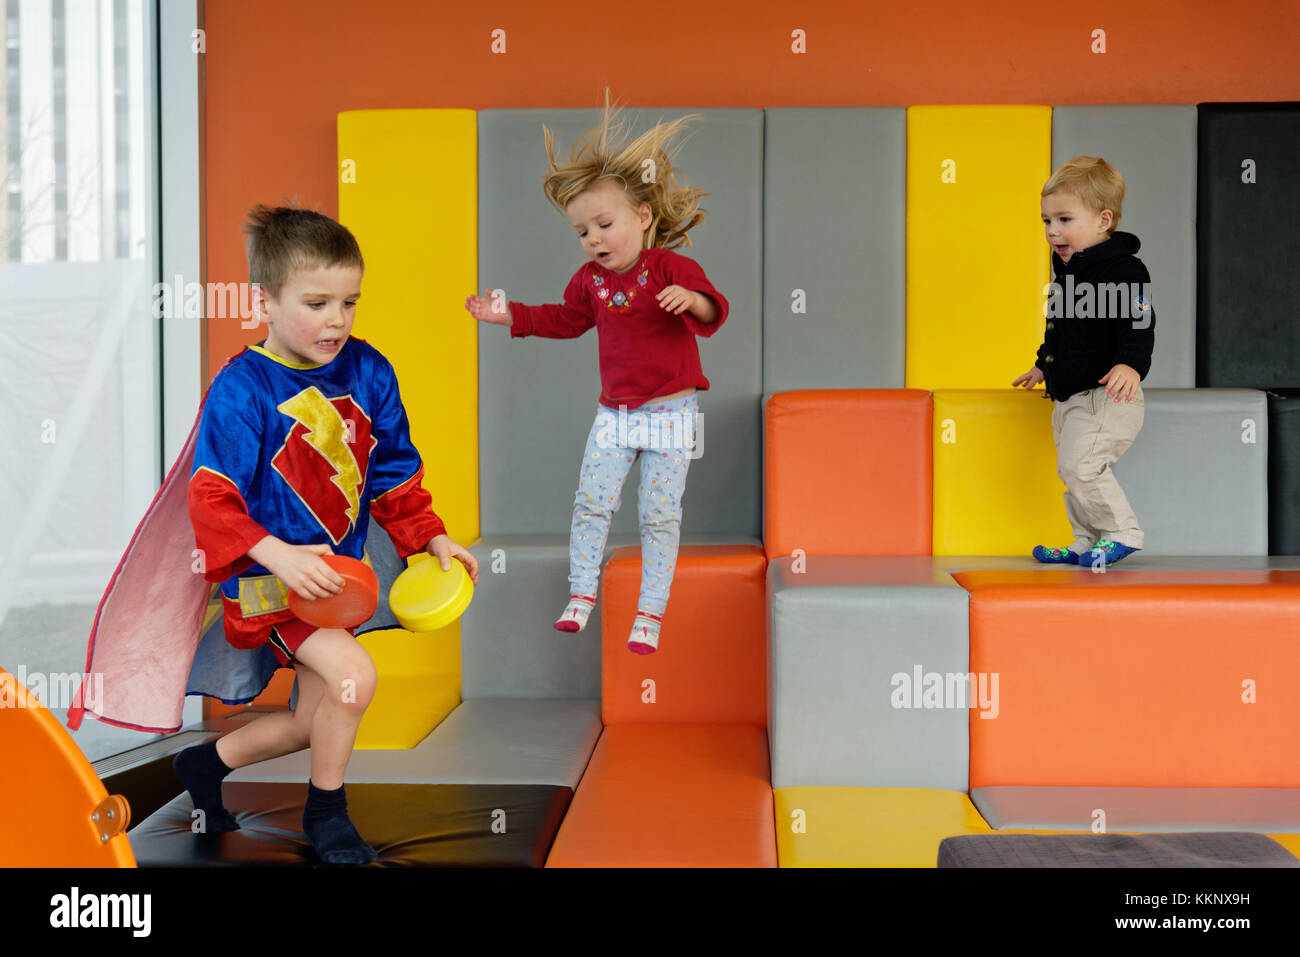 Children playing and jumping in an indoor padded play area - Stock Image